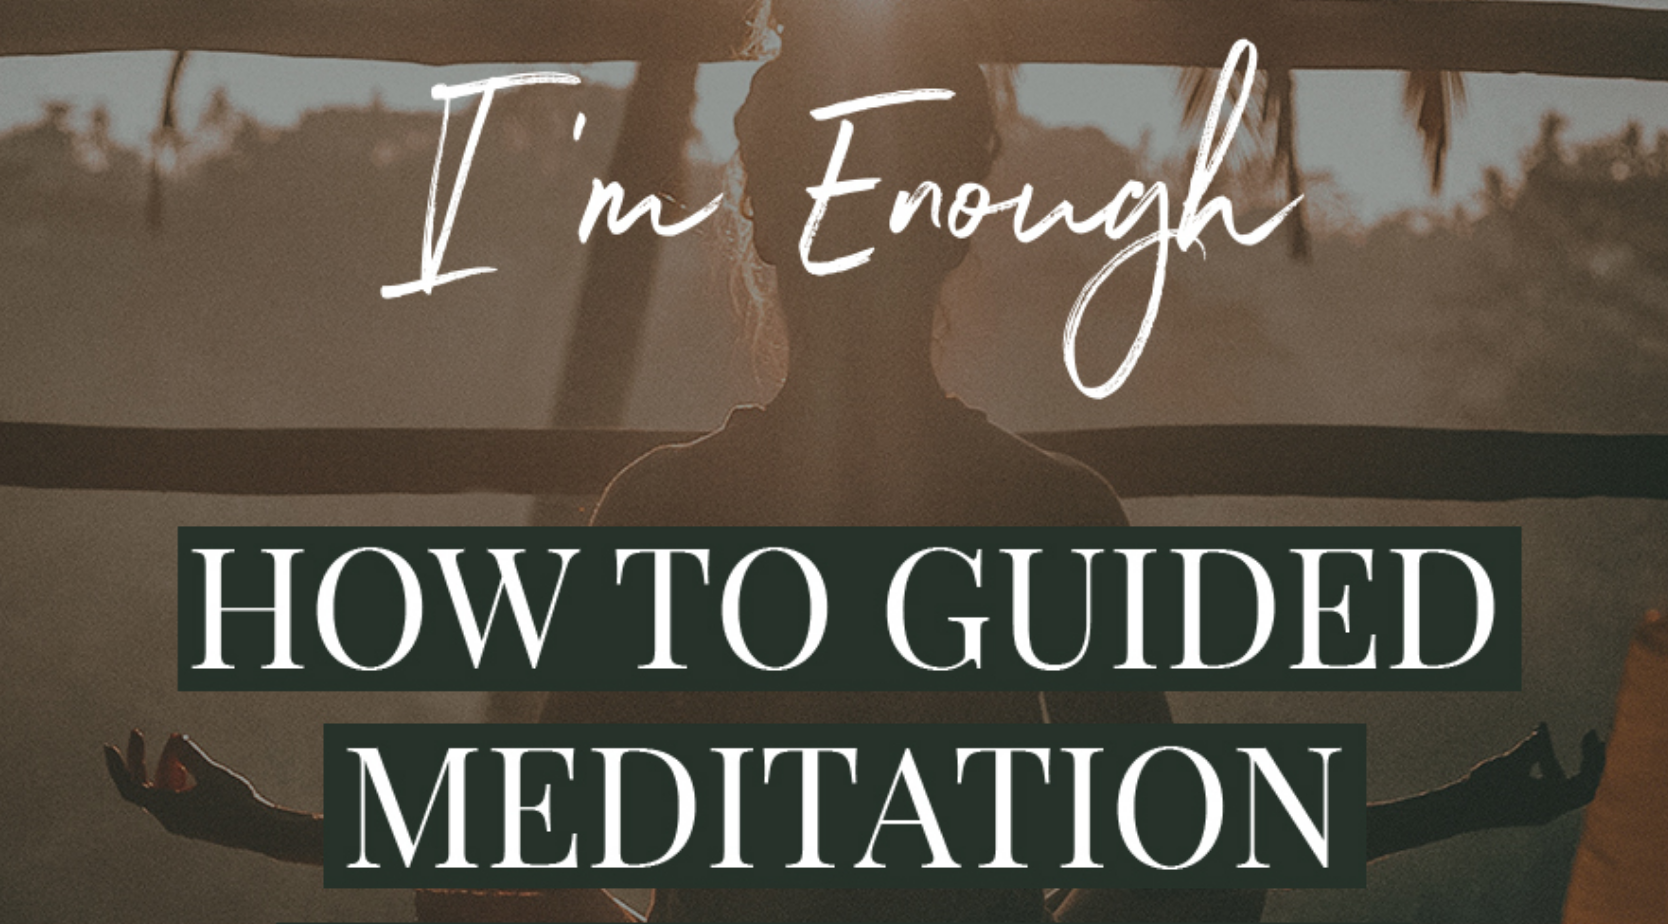 How To Guided Meditation